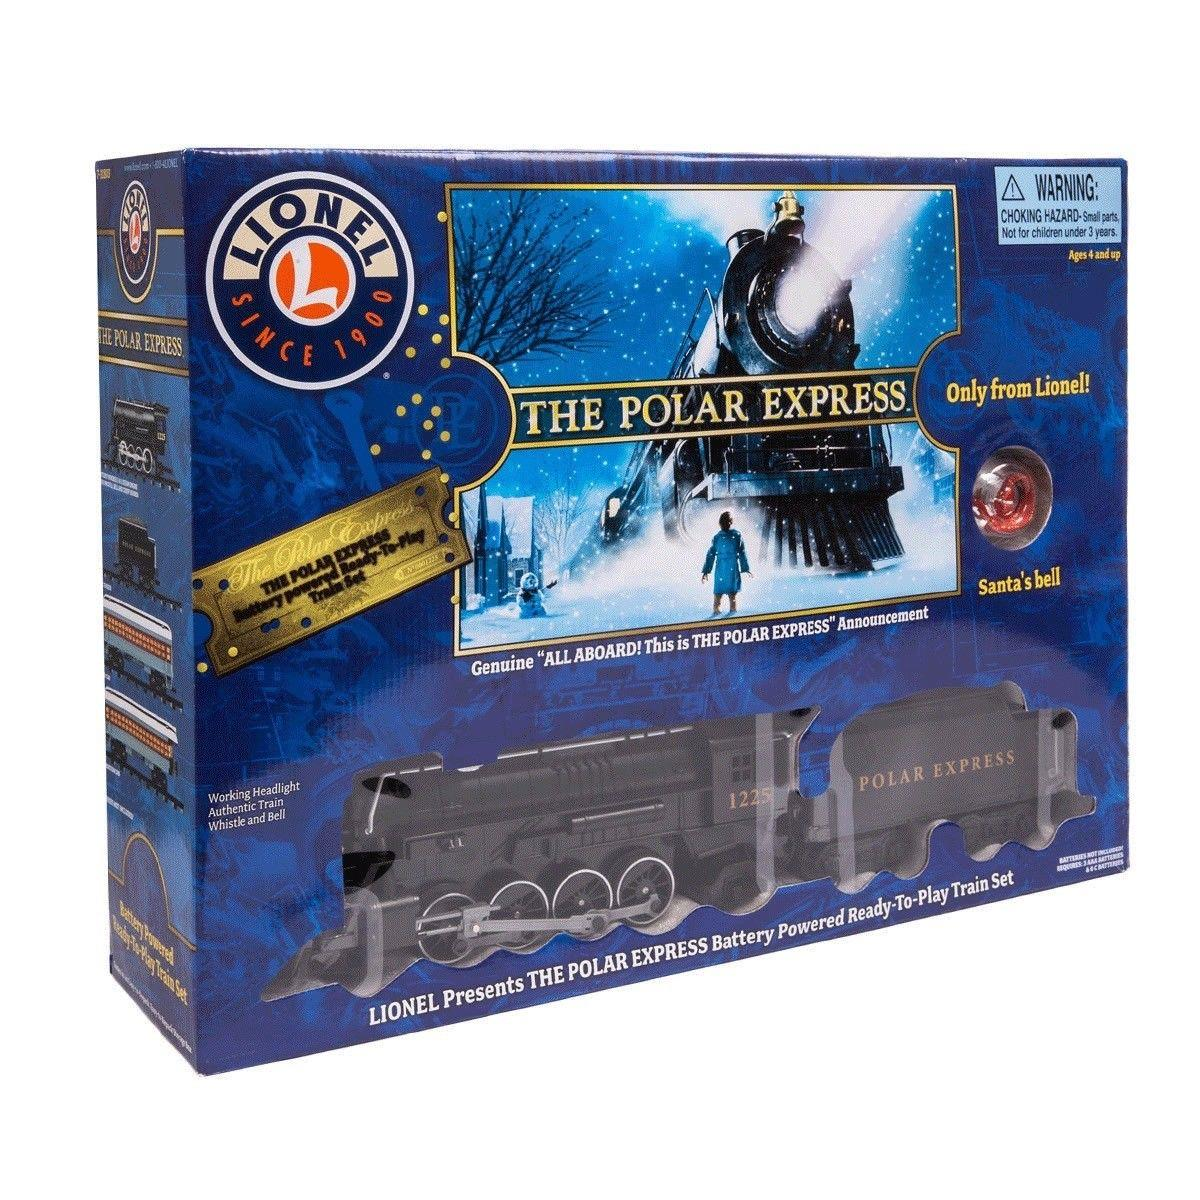 Lionel The Polar Express Train Set With Lights And Sound